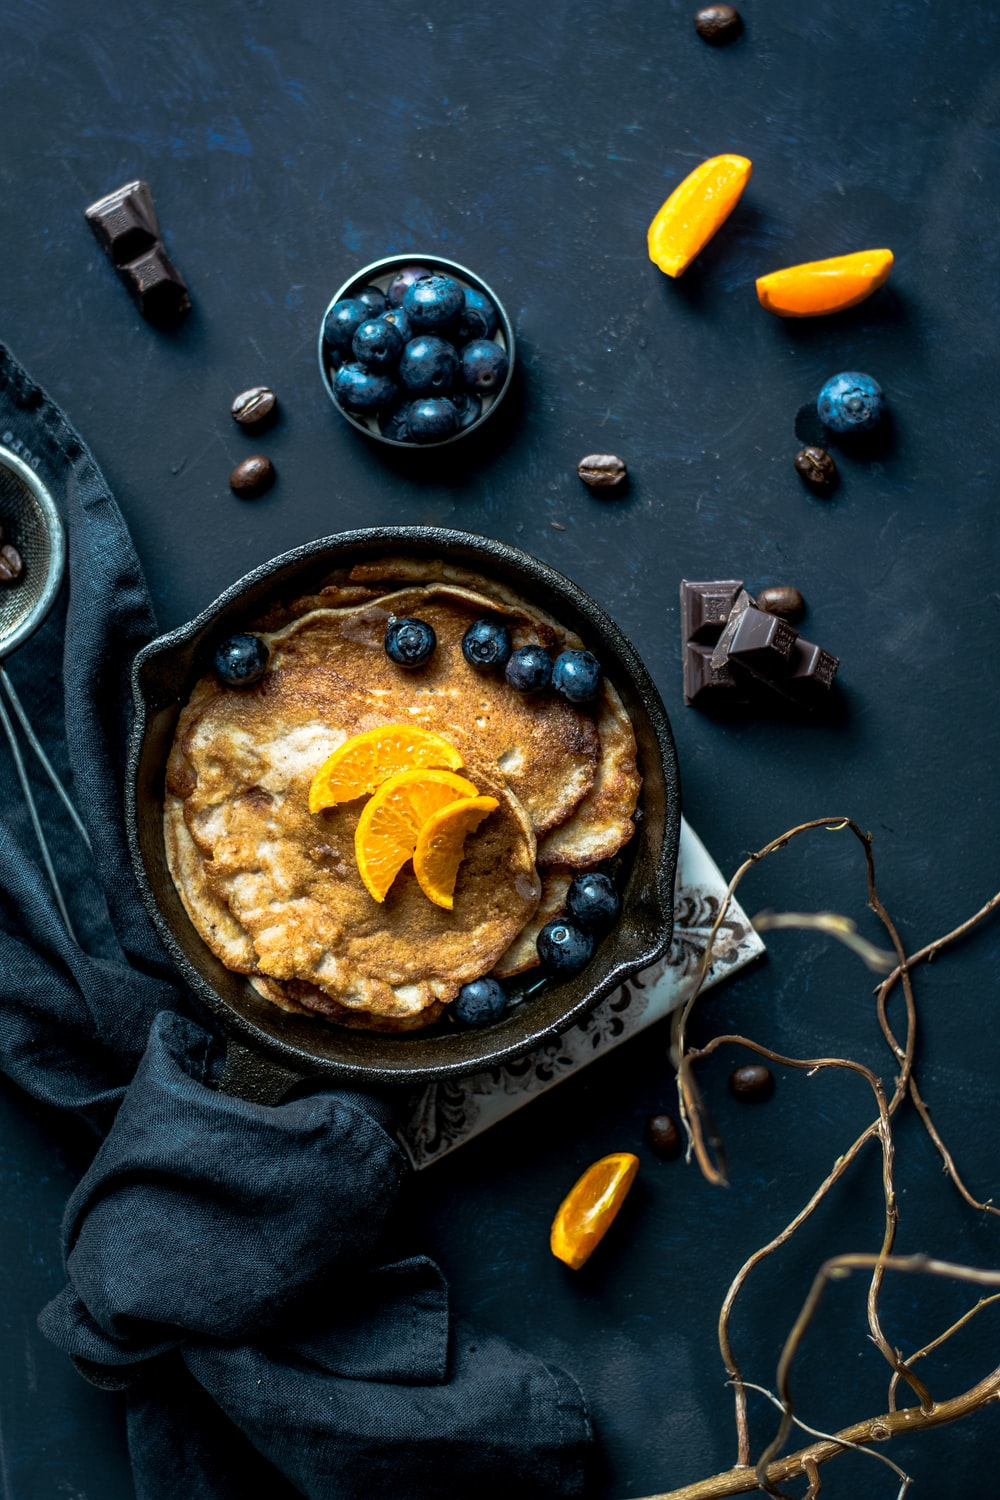 pancake with orange and blueberries beside scattered chocolate and coffee beans